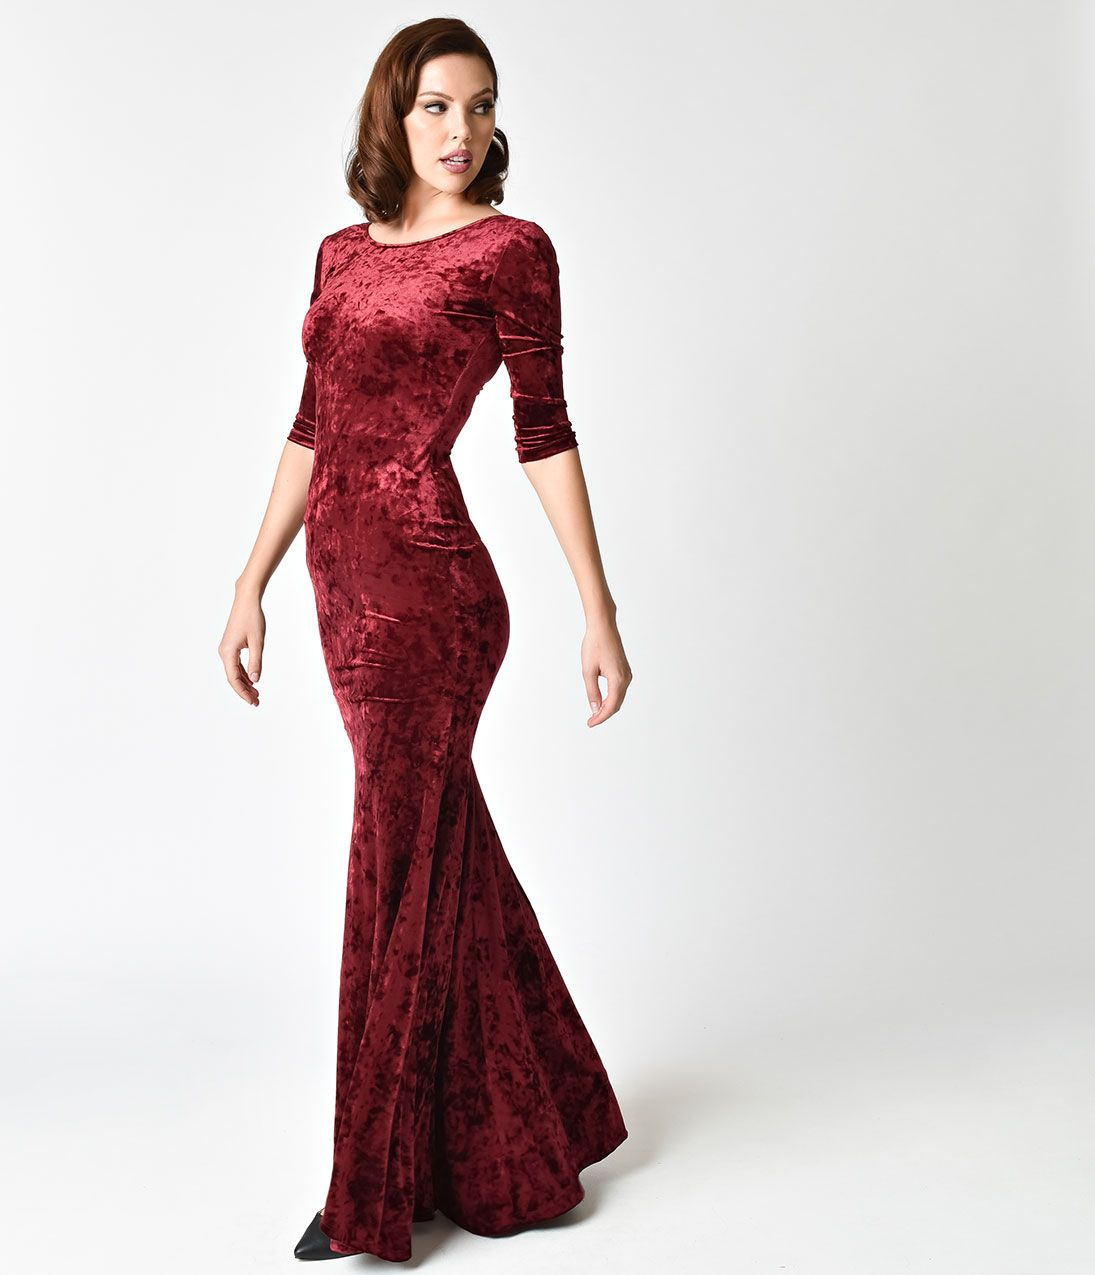 Vintage Evening Dresses And Formal Gowns Style Burgundy Crushed Velvet Sleeved Maxi Dress